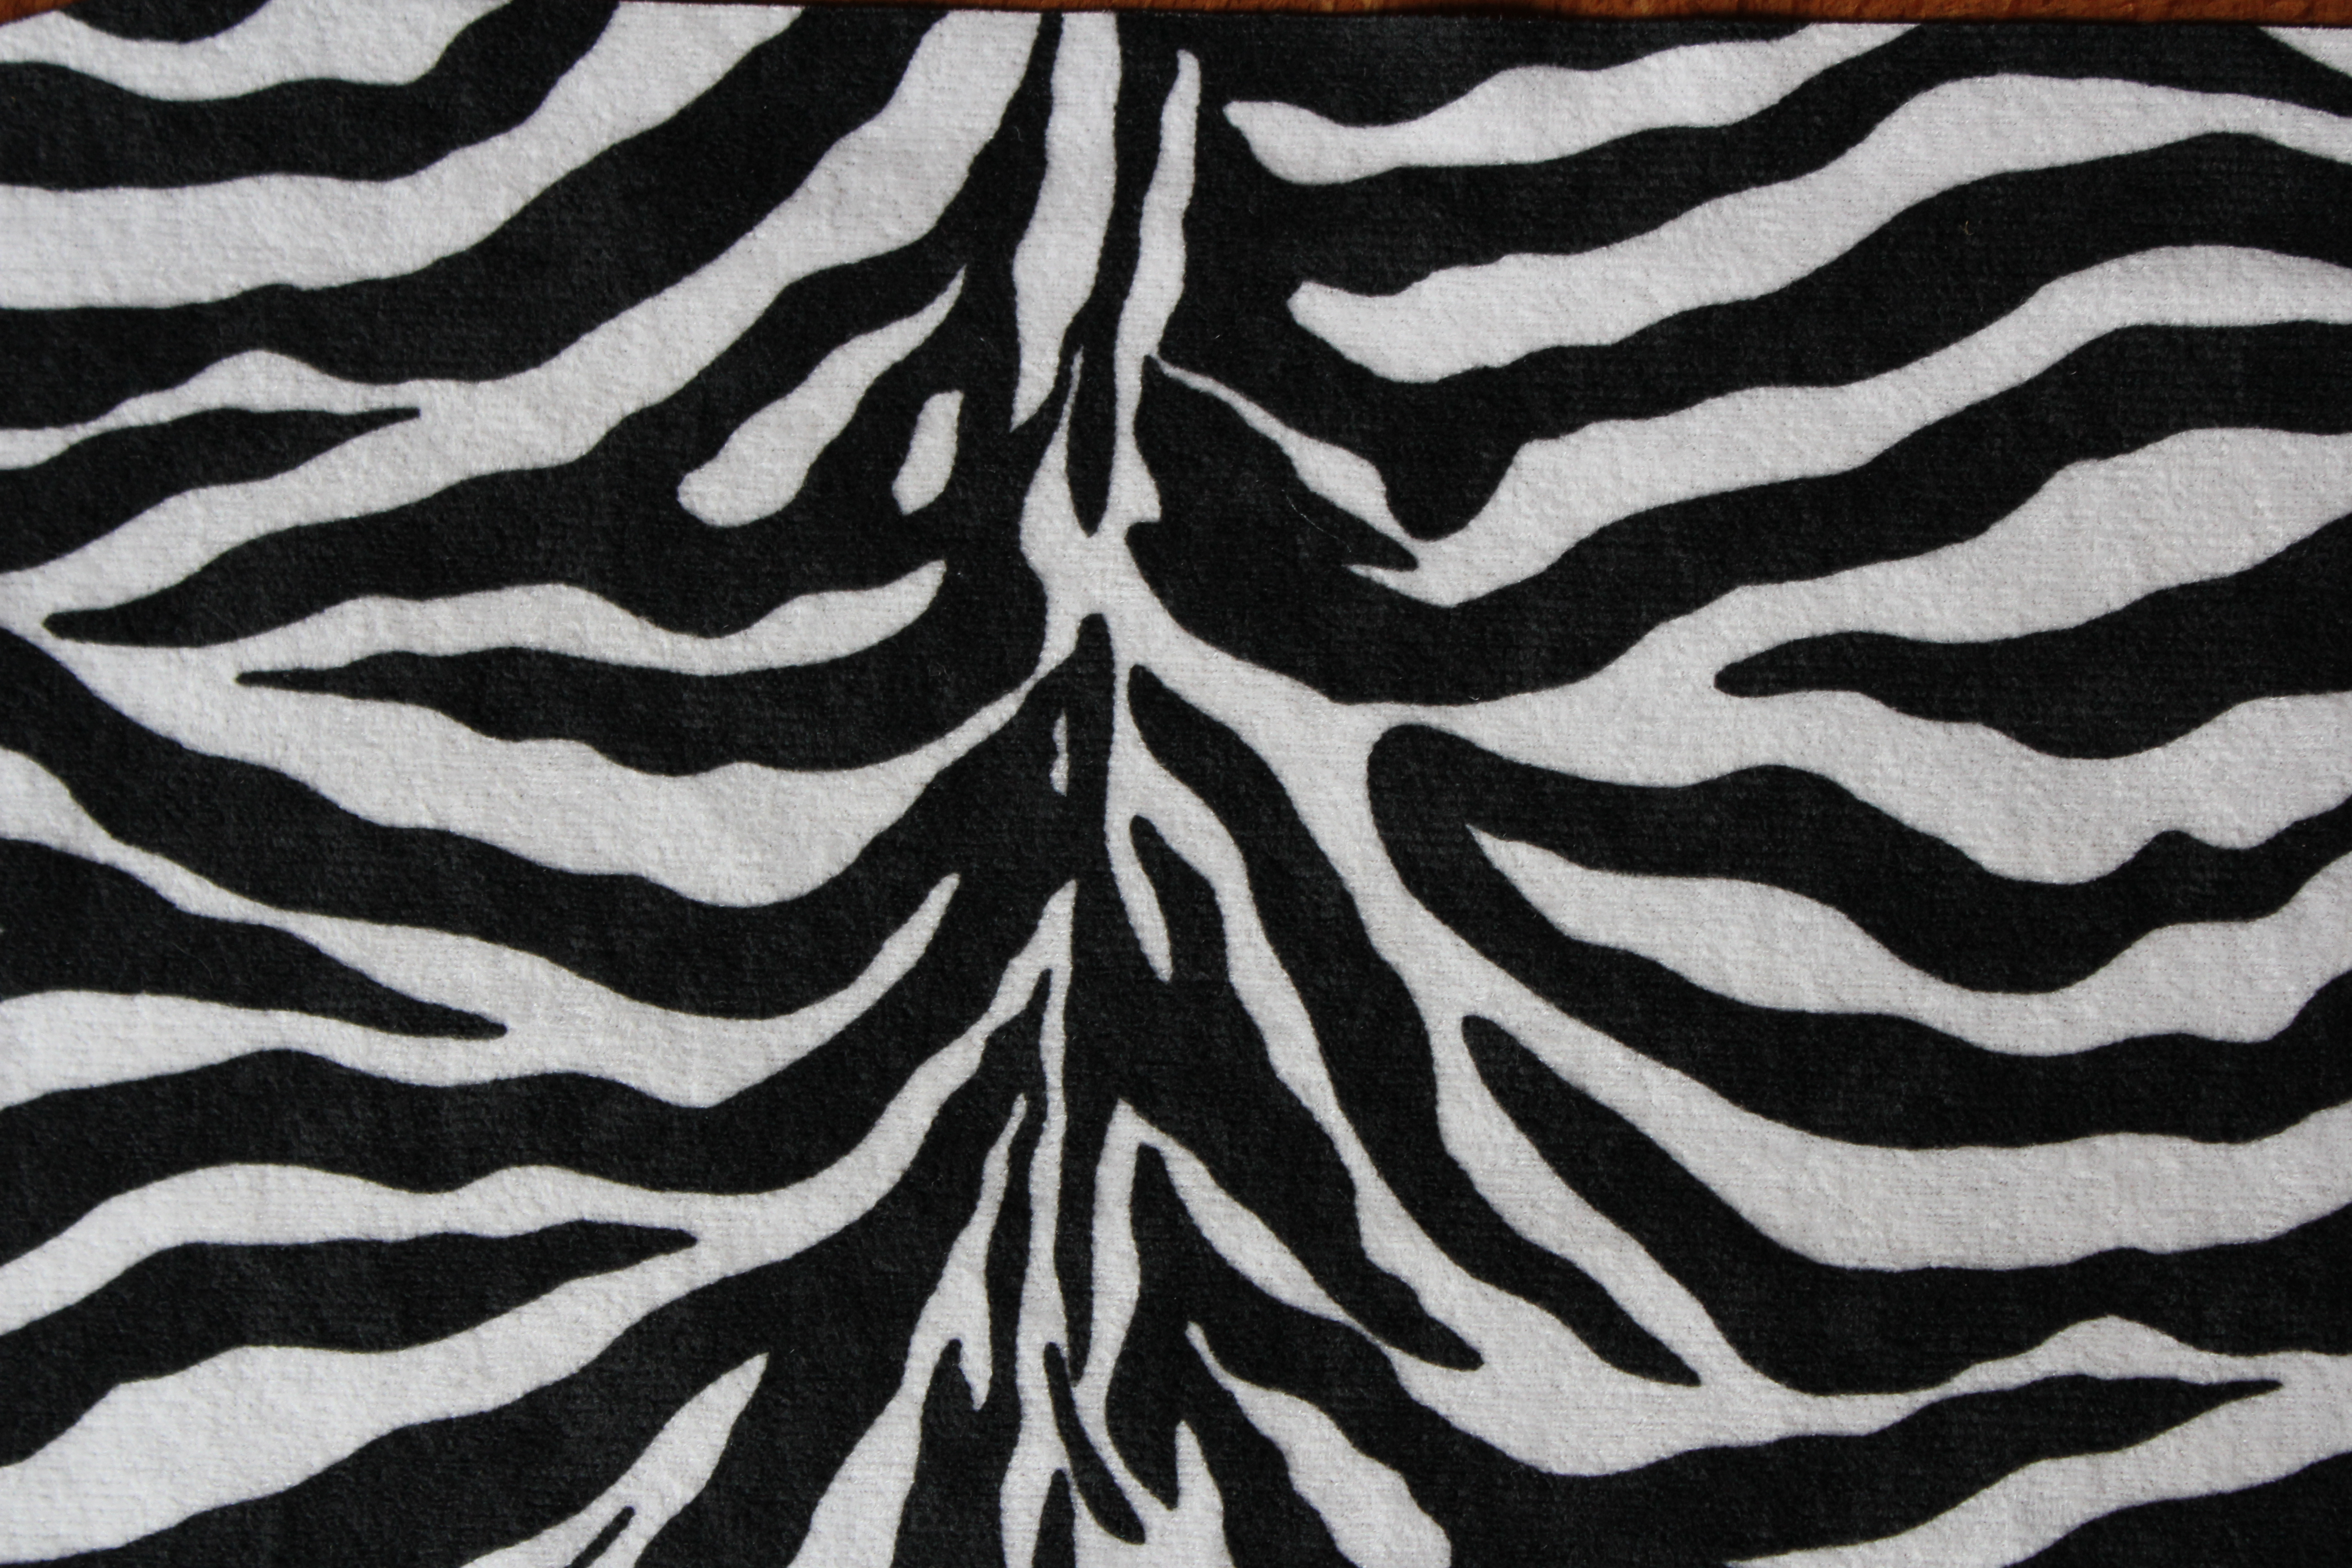 Animal Print Wallpaper For Walls Black And White Zebra Print Micro Suede